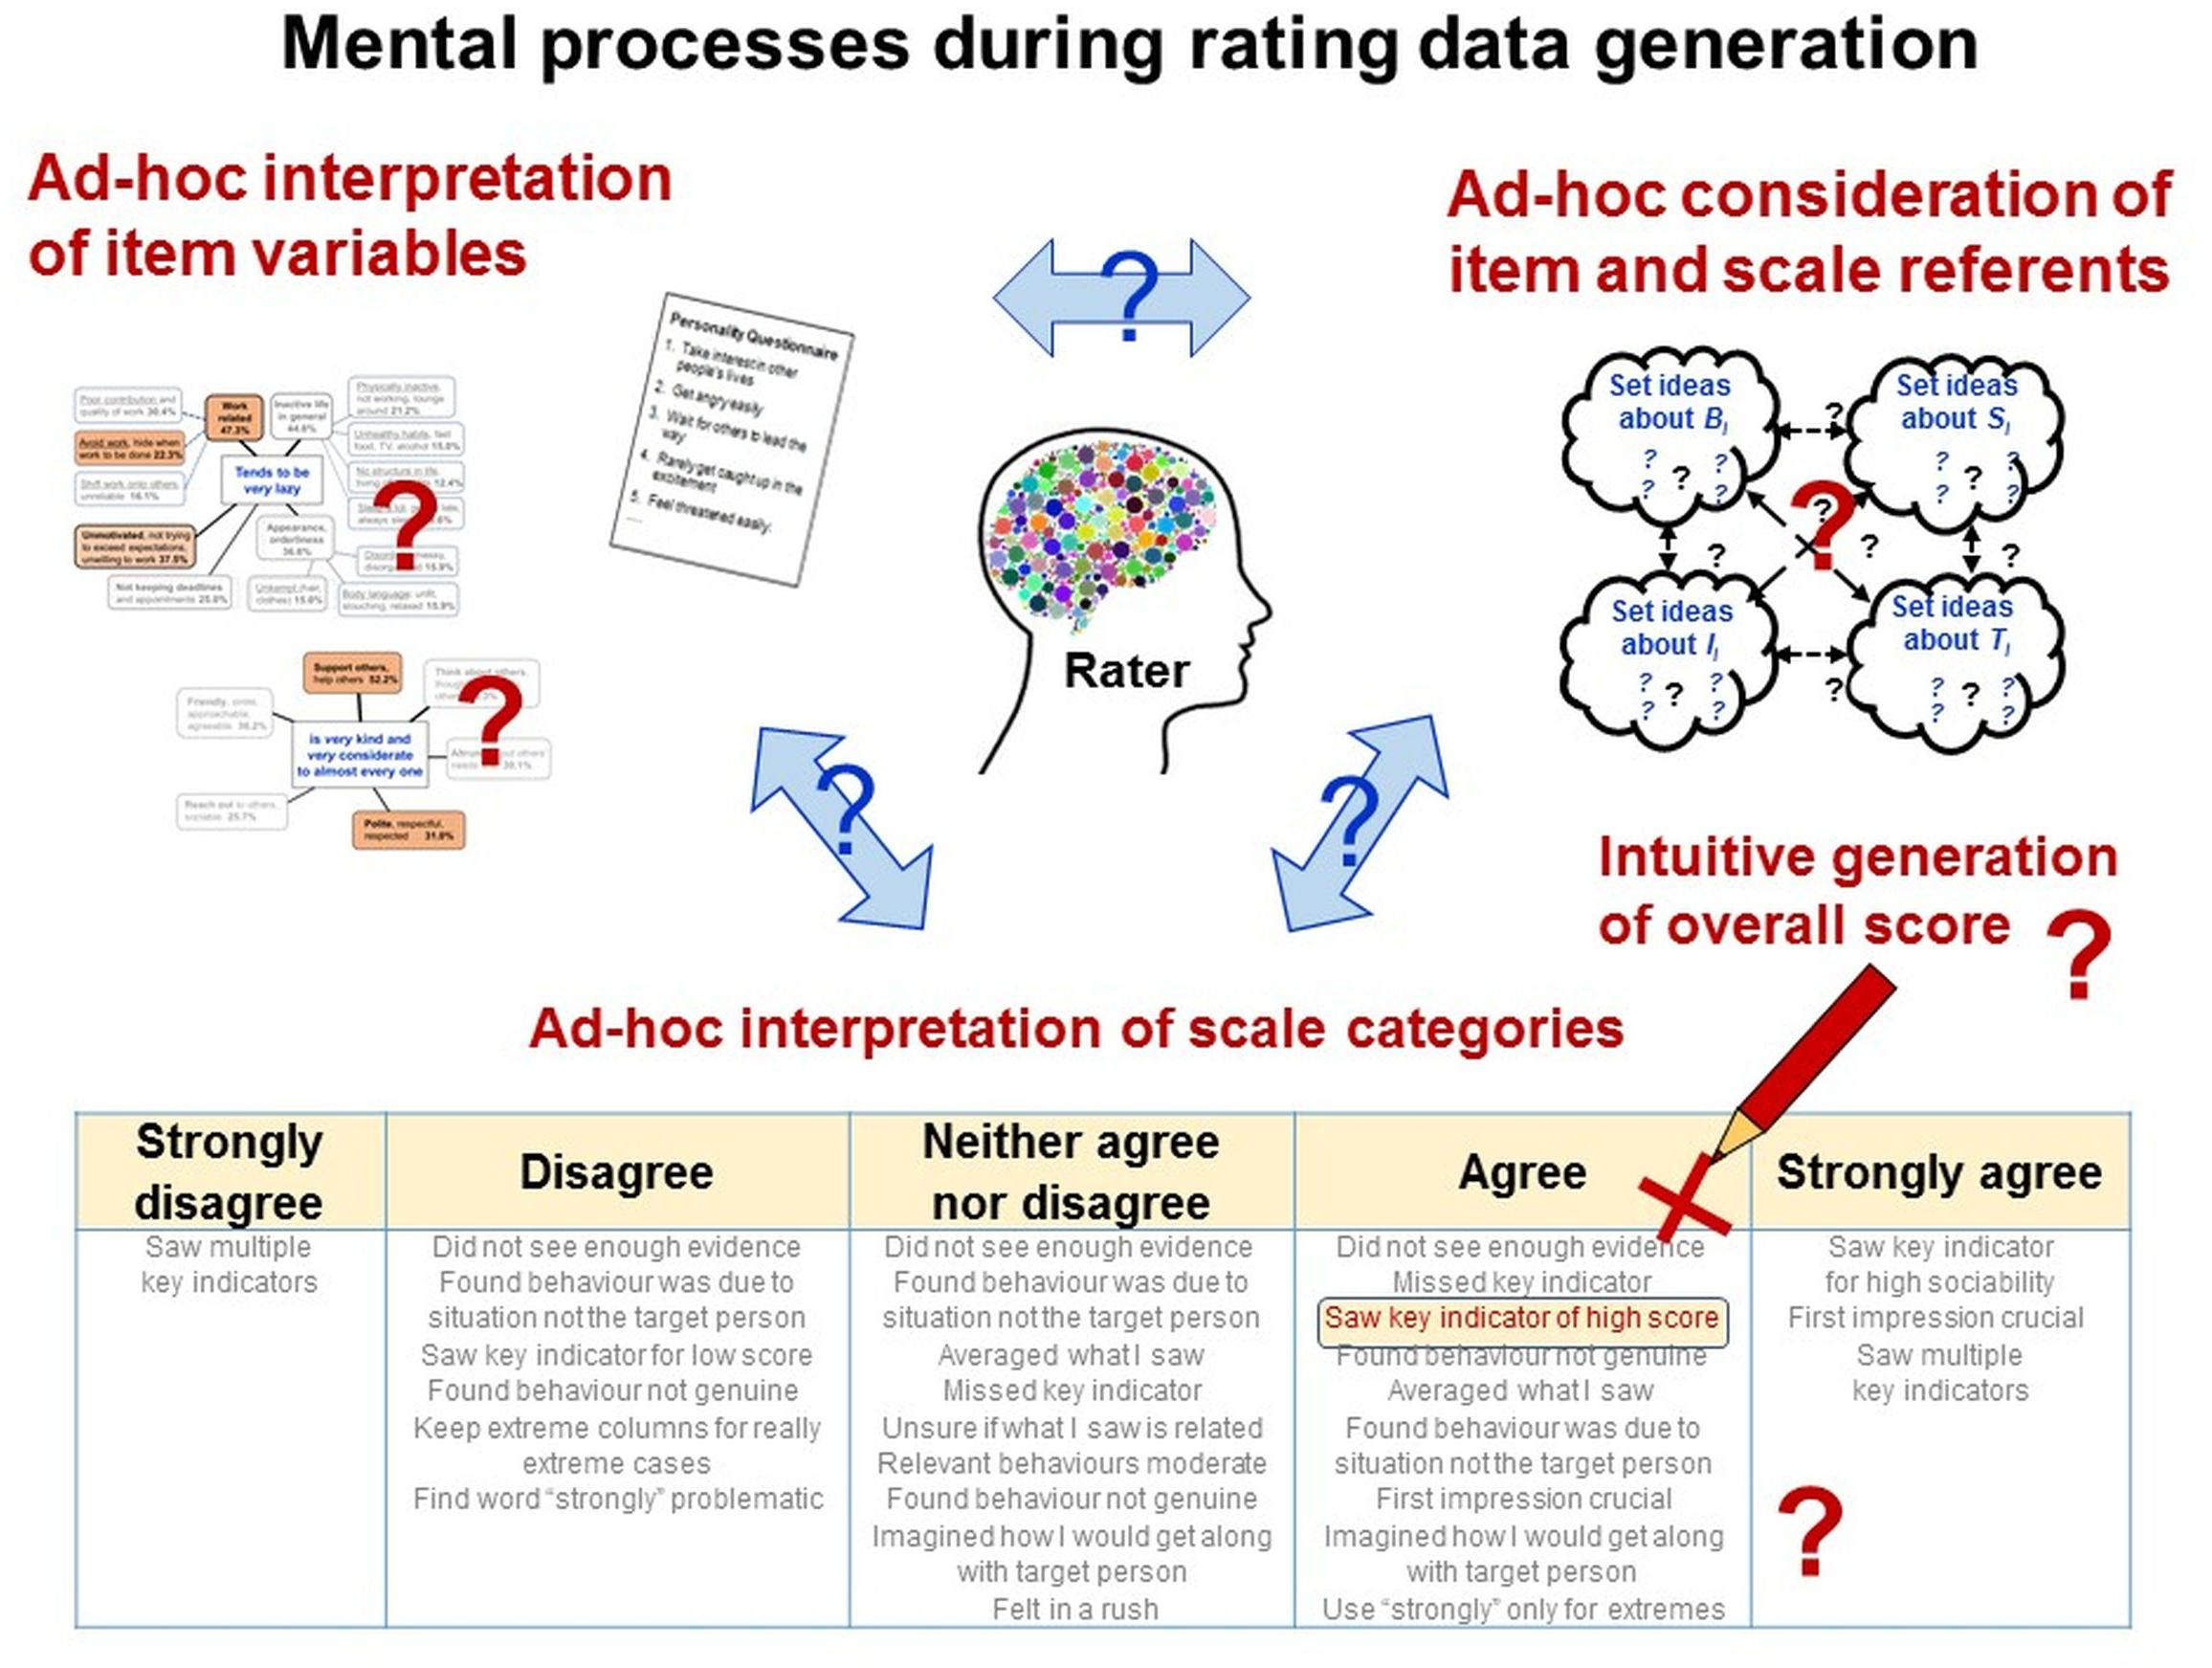 Frontiers | Quantitative Data From Rating Scales: An